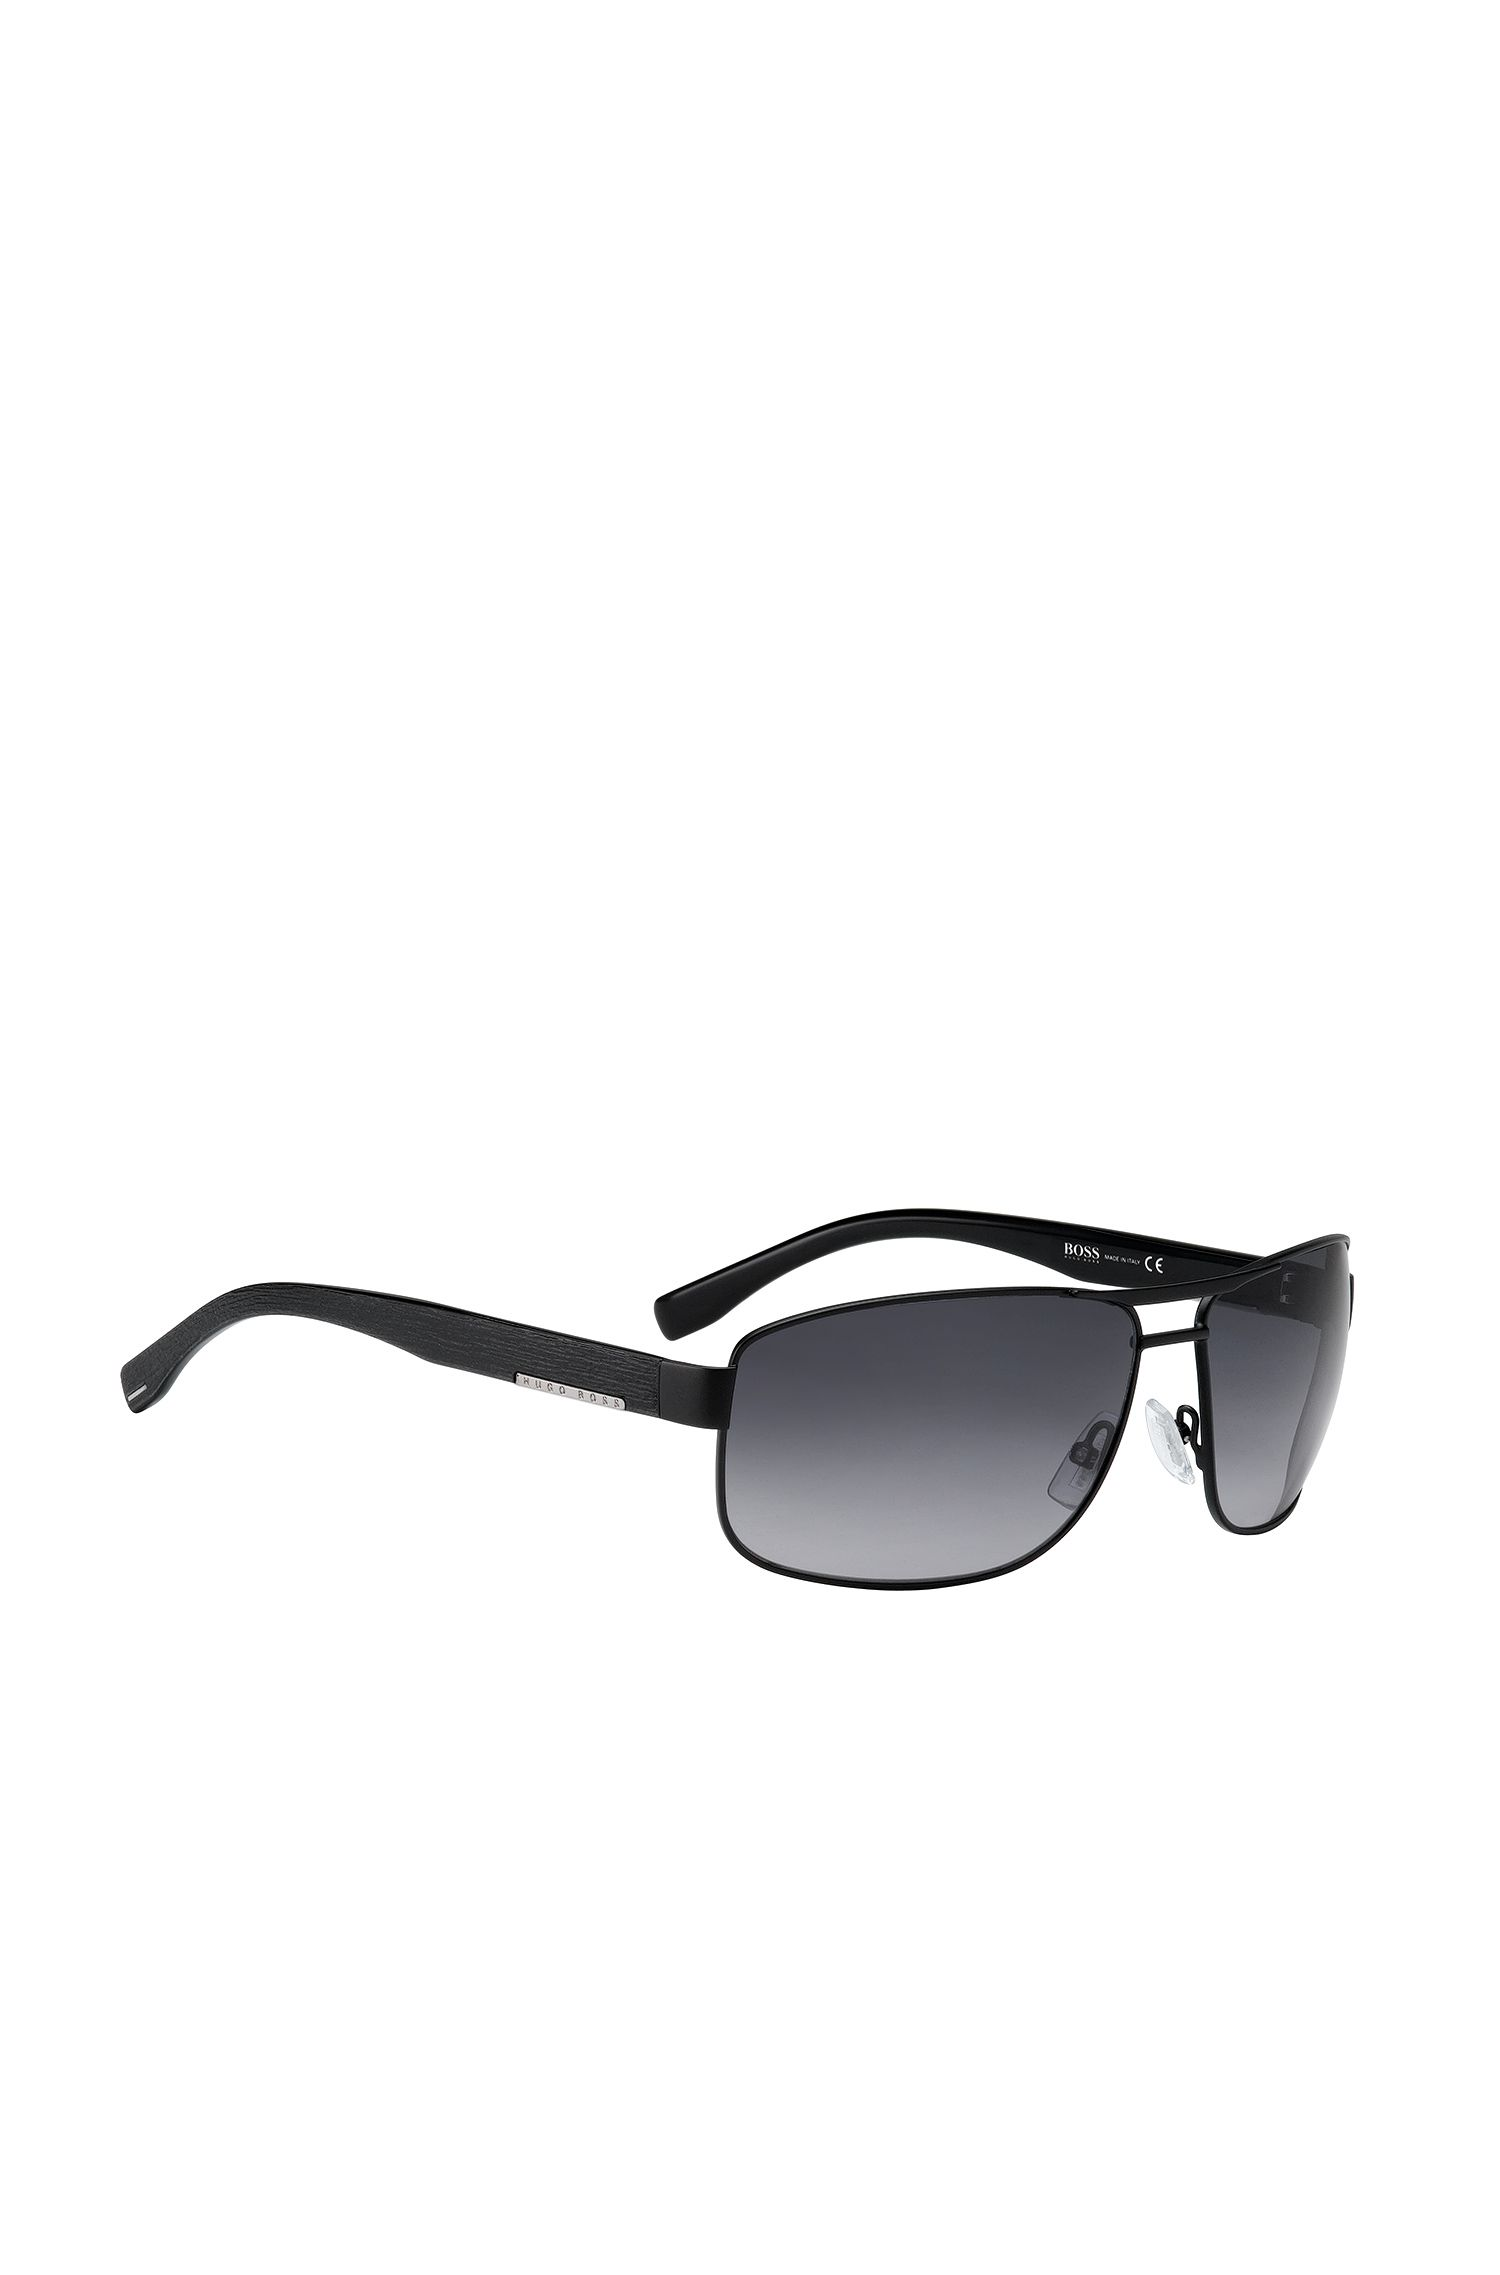 Sunglasses 'BOSS 0668' in metal